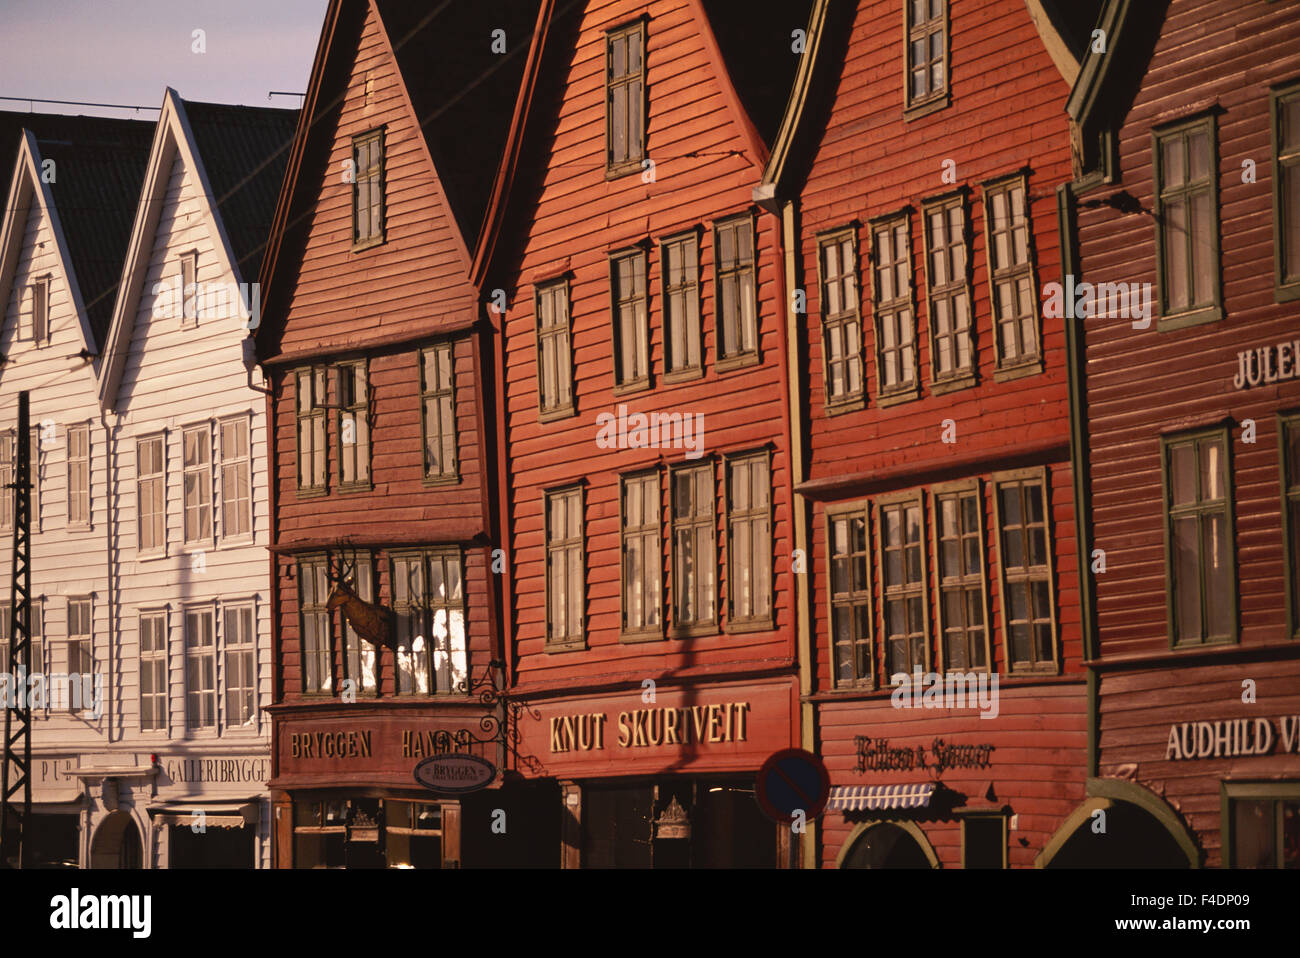 Norway, Hordaland, Bergen, Bryggen, Hanseatic Warehouses. (Large format sizes available) - Stock Image